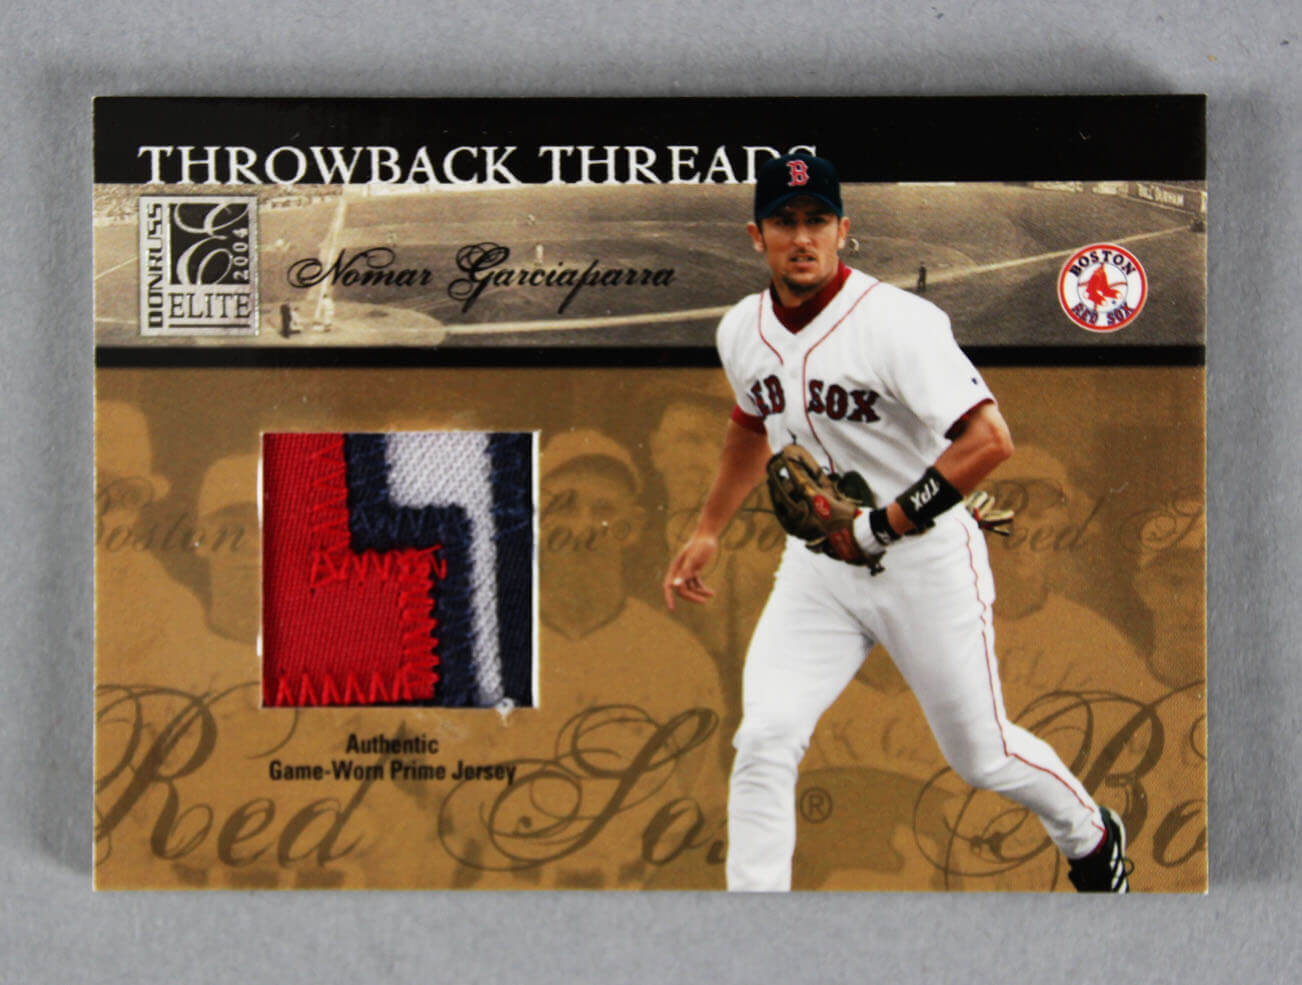 sports shoes cd83b 2e8ce 2004 Donruss Elite Ted Williams & Nomar Garciaparra Game-Used Jersey  Baseball Card Red Sox 4/5 Throwback Threads